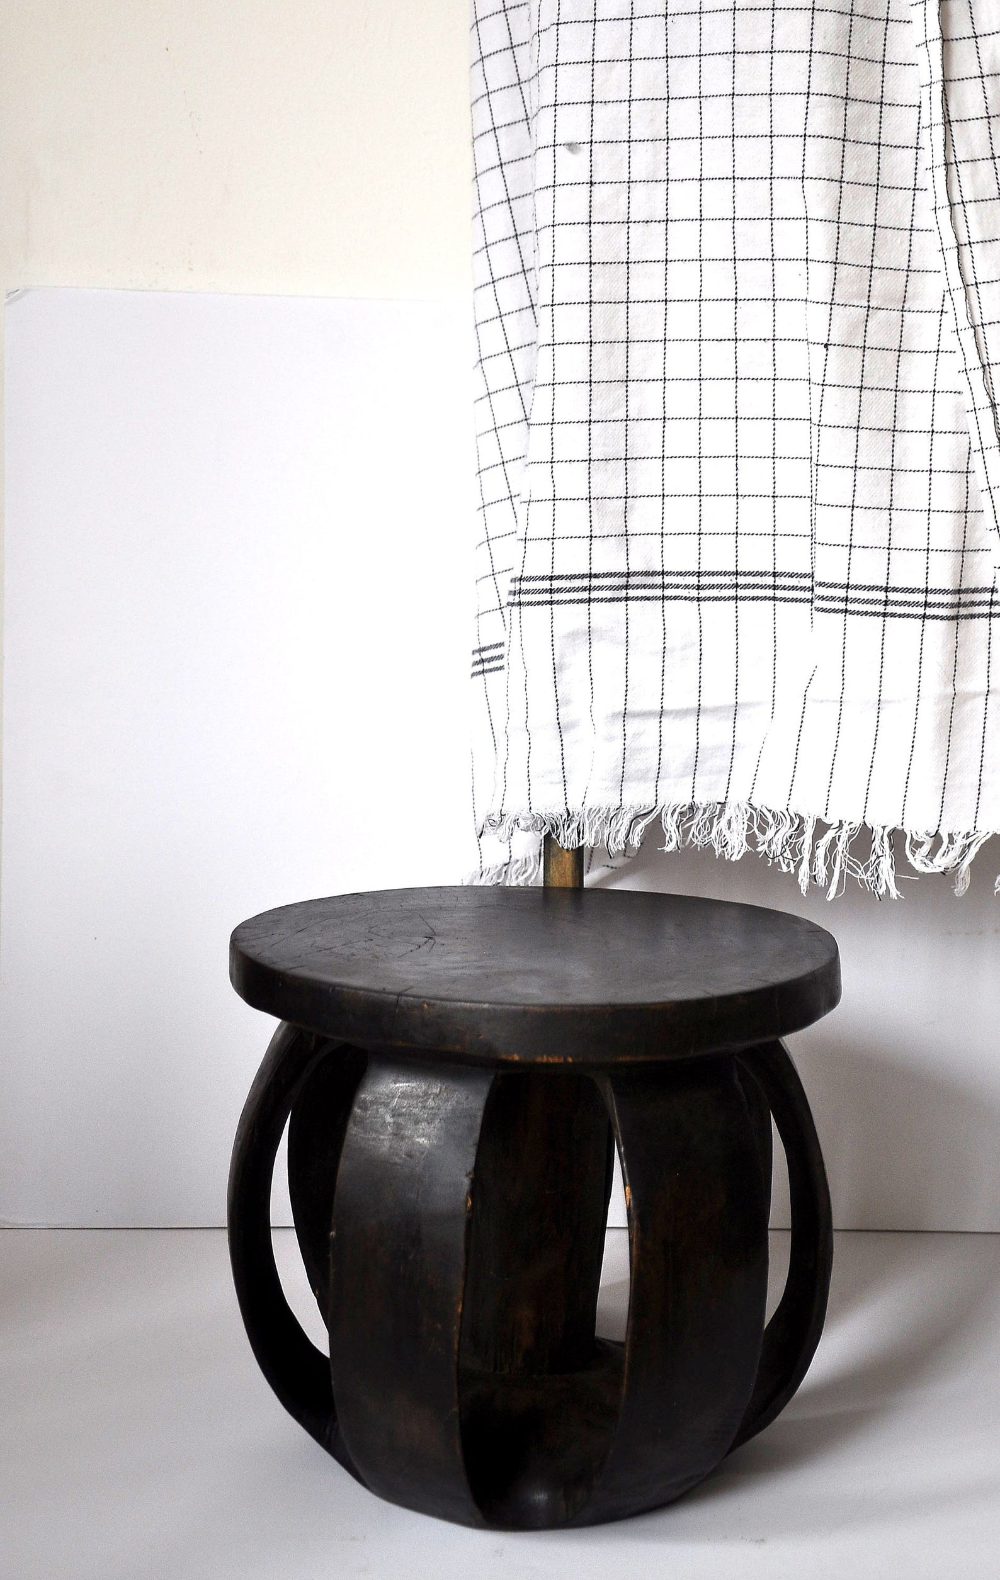 Small Side Table Wooden Table African Baga Stool Wooden Etsy Side Table Small Side Table Wooden Tables